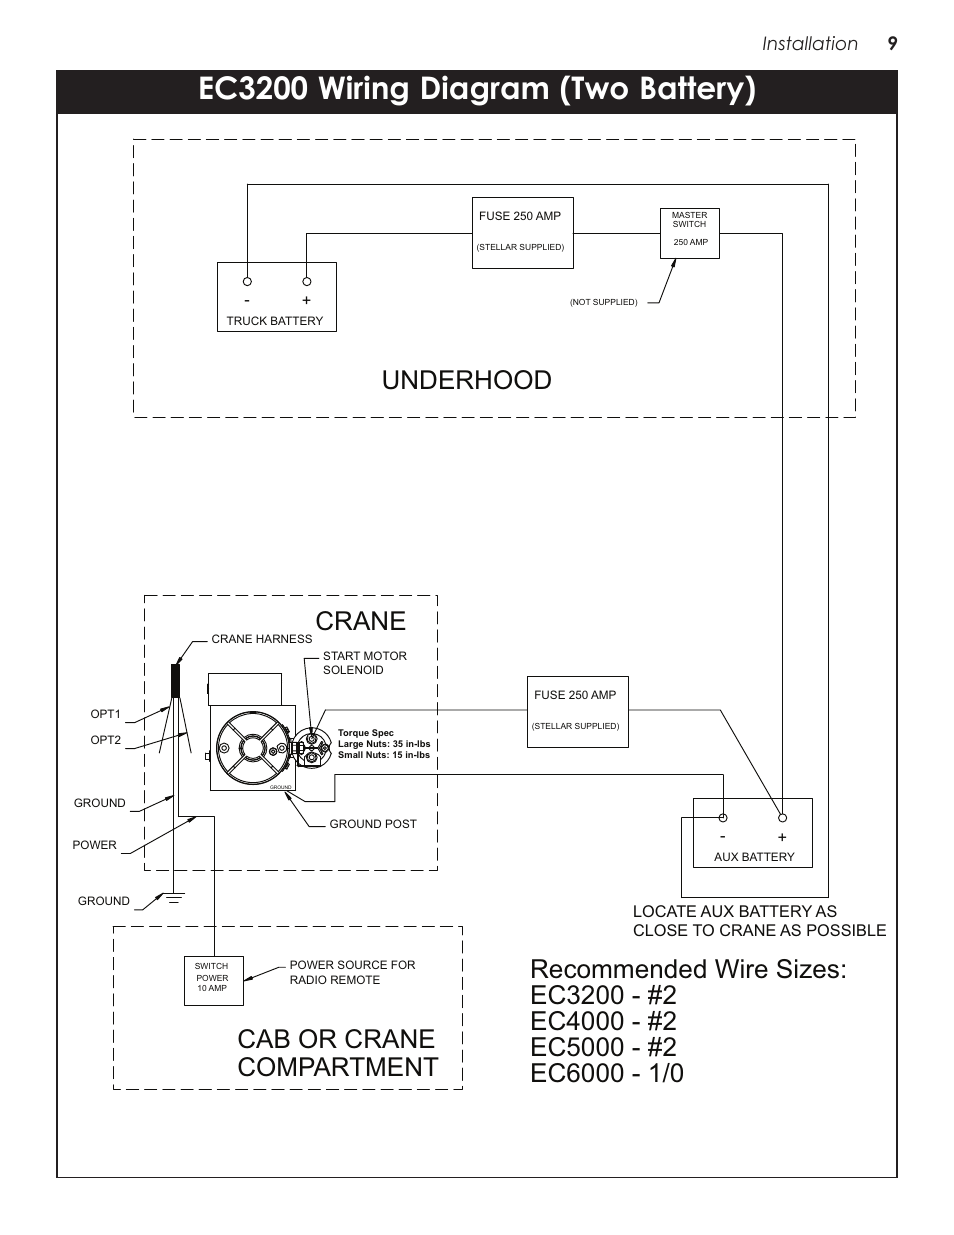 hight resolution of ec3200 wiring diagram two battery ec3200 wiring diagram one battery underhood stellar industries crane ec3200 user manual page 13 28